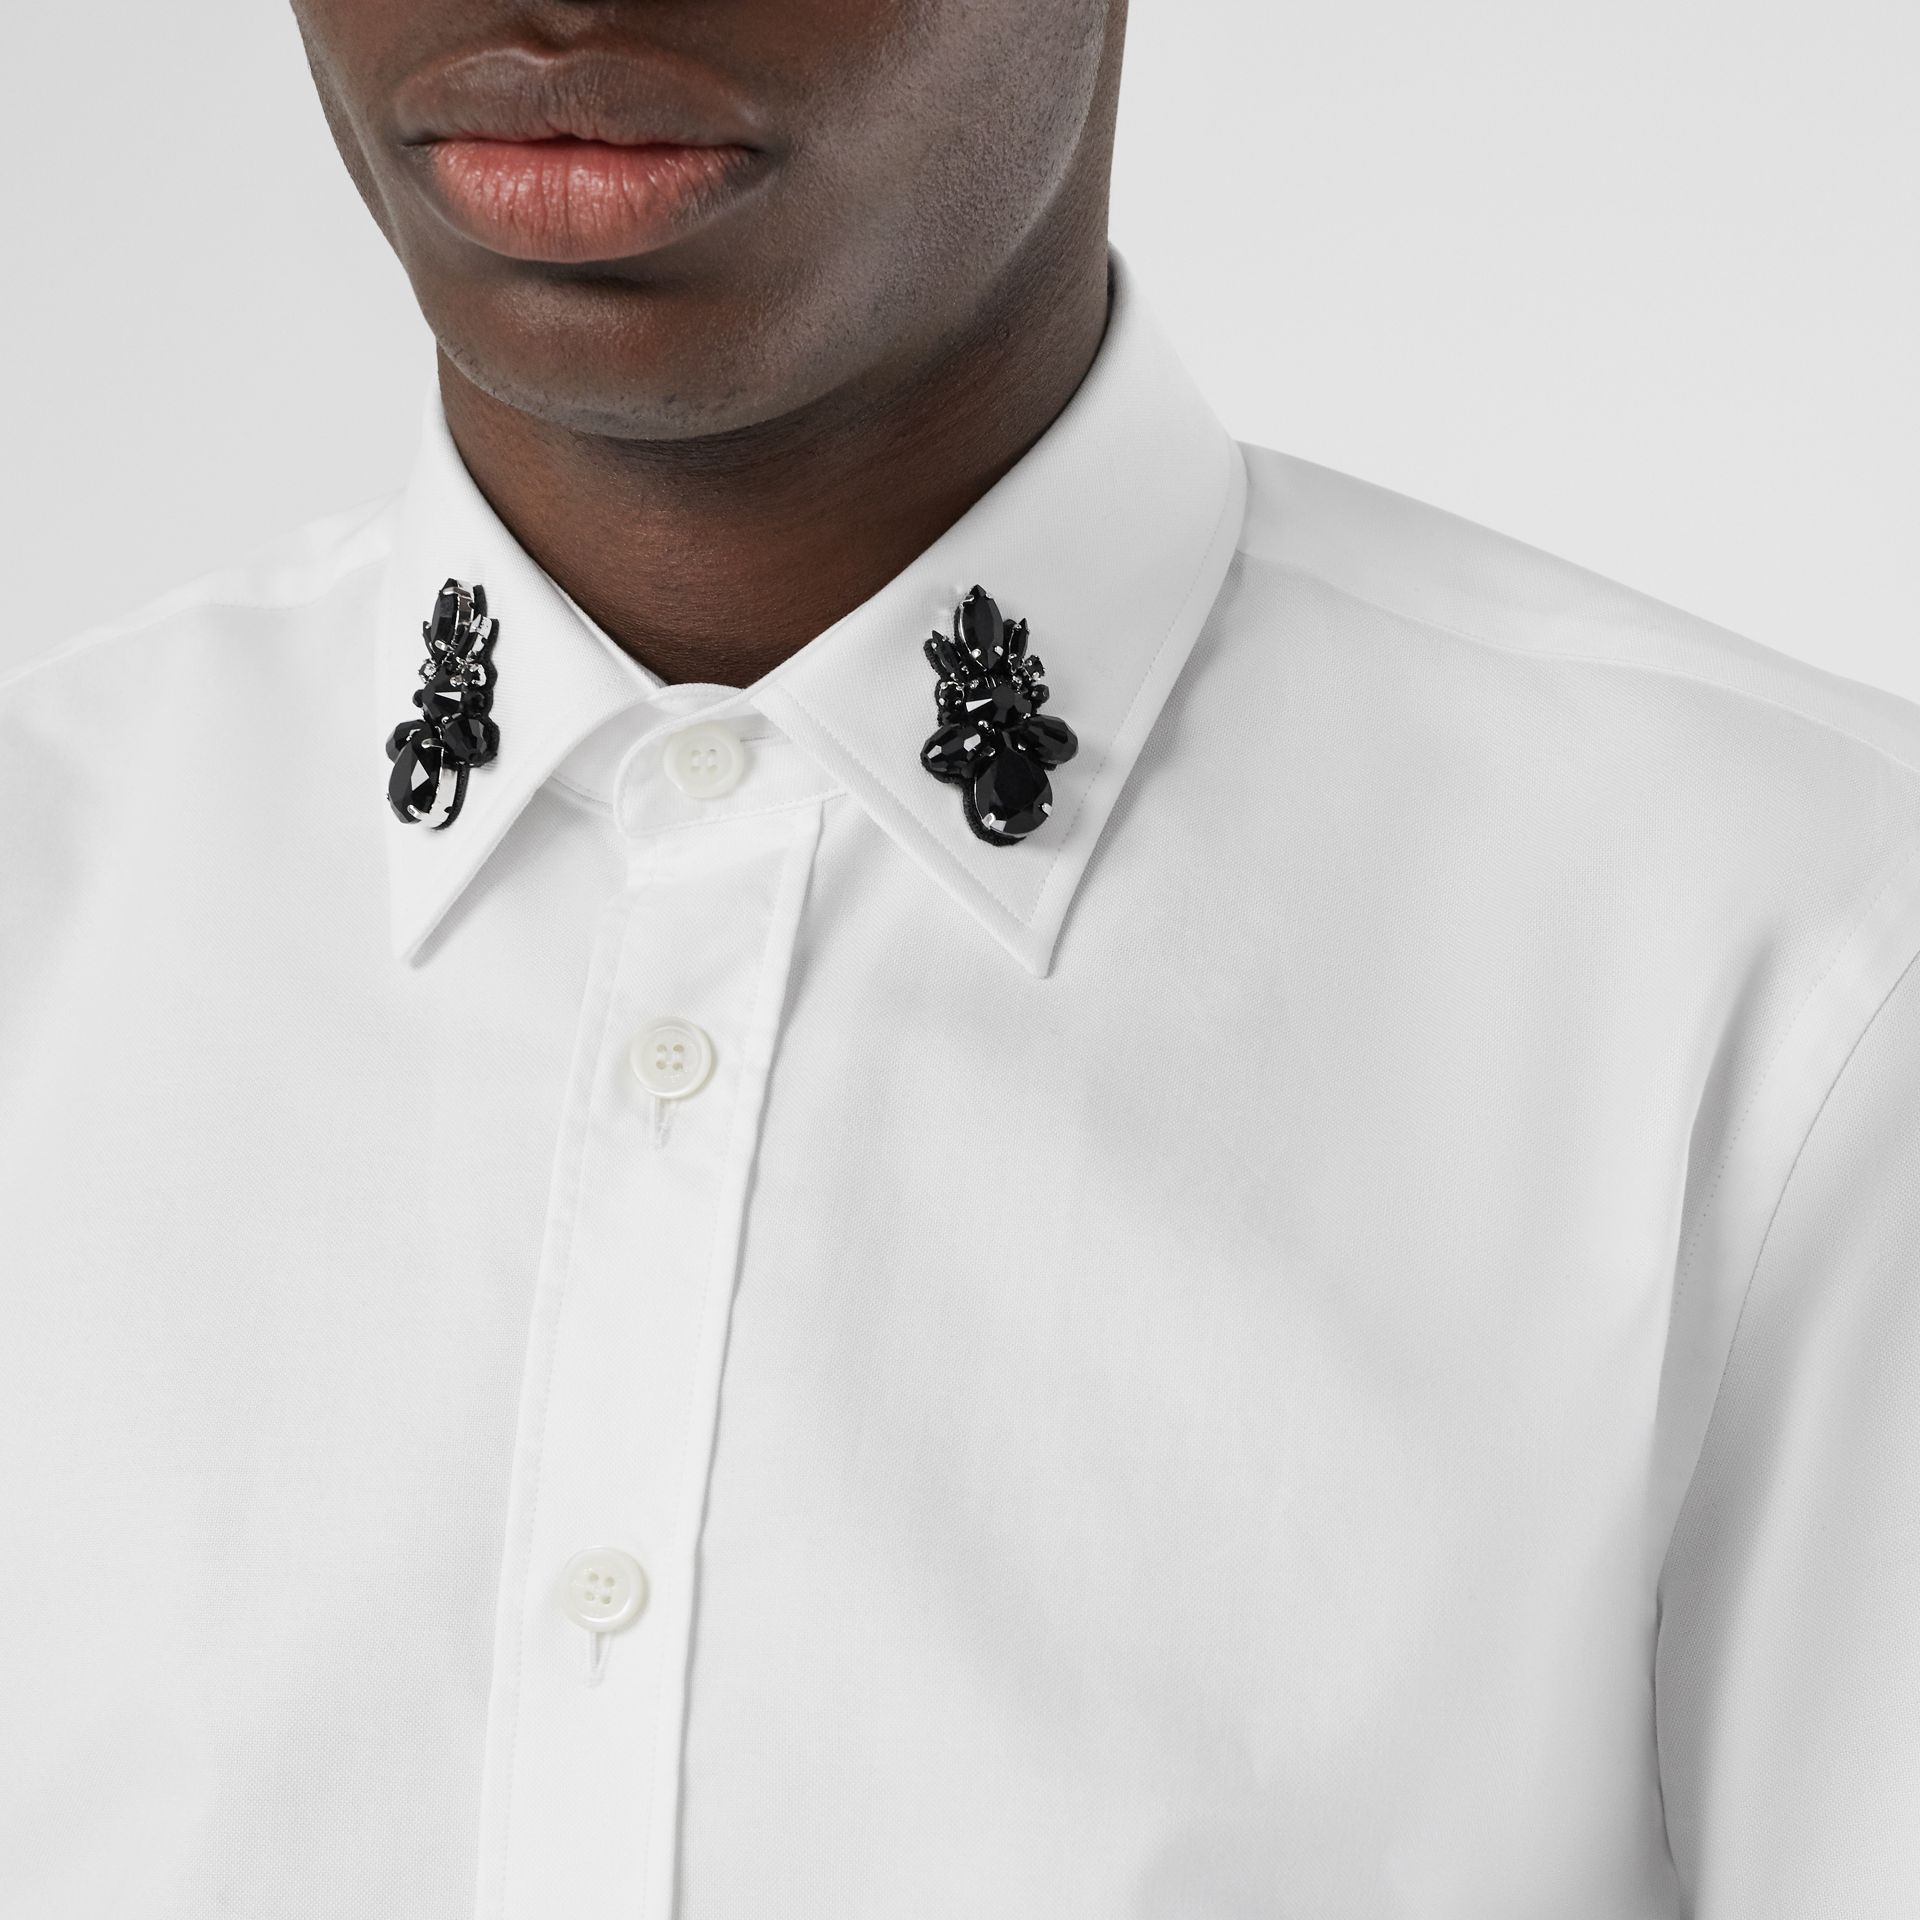 Classic Fit Crystal Detail Cotton Oxford Dress Shirt in White - Men | Burberry - gallery image 1